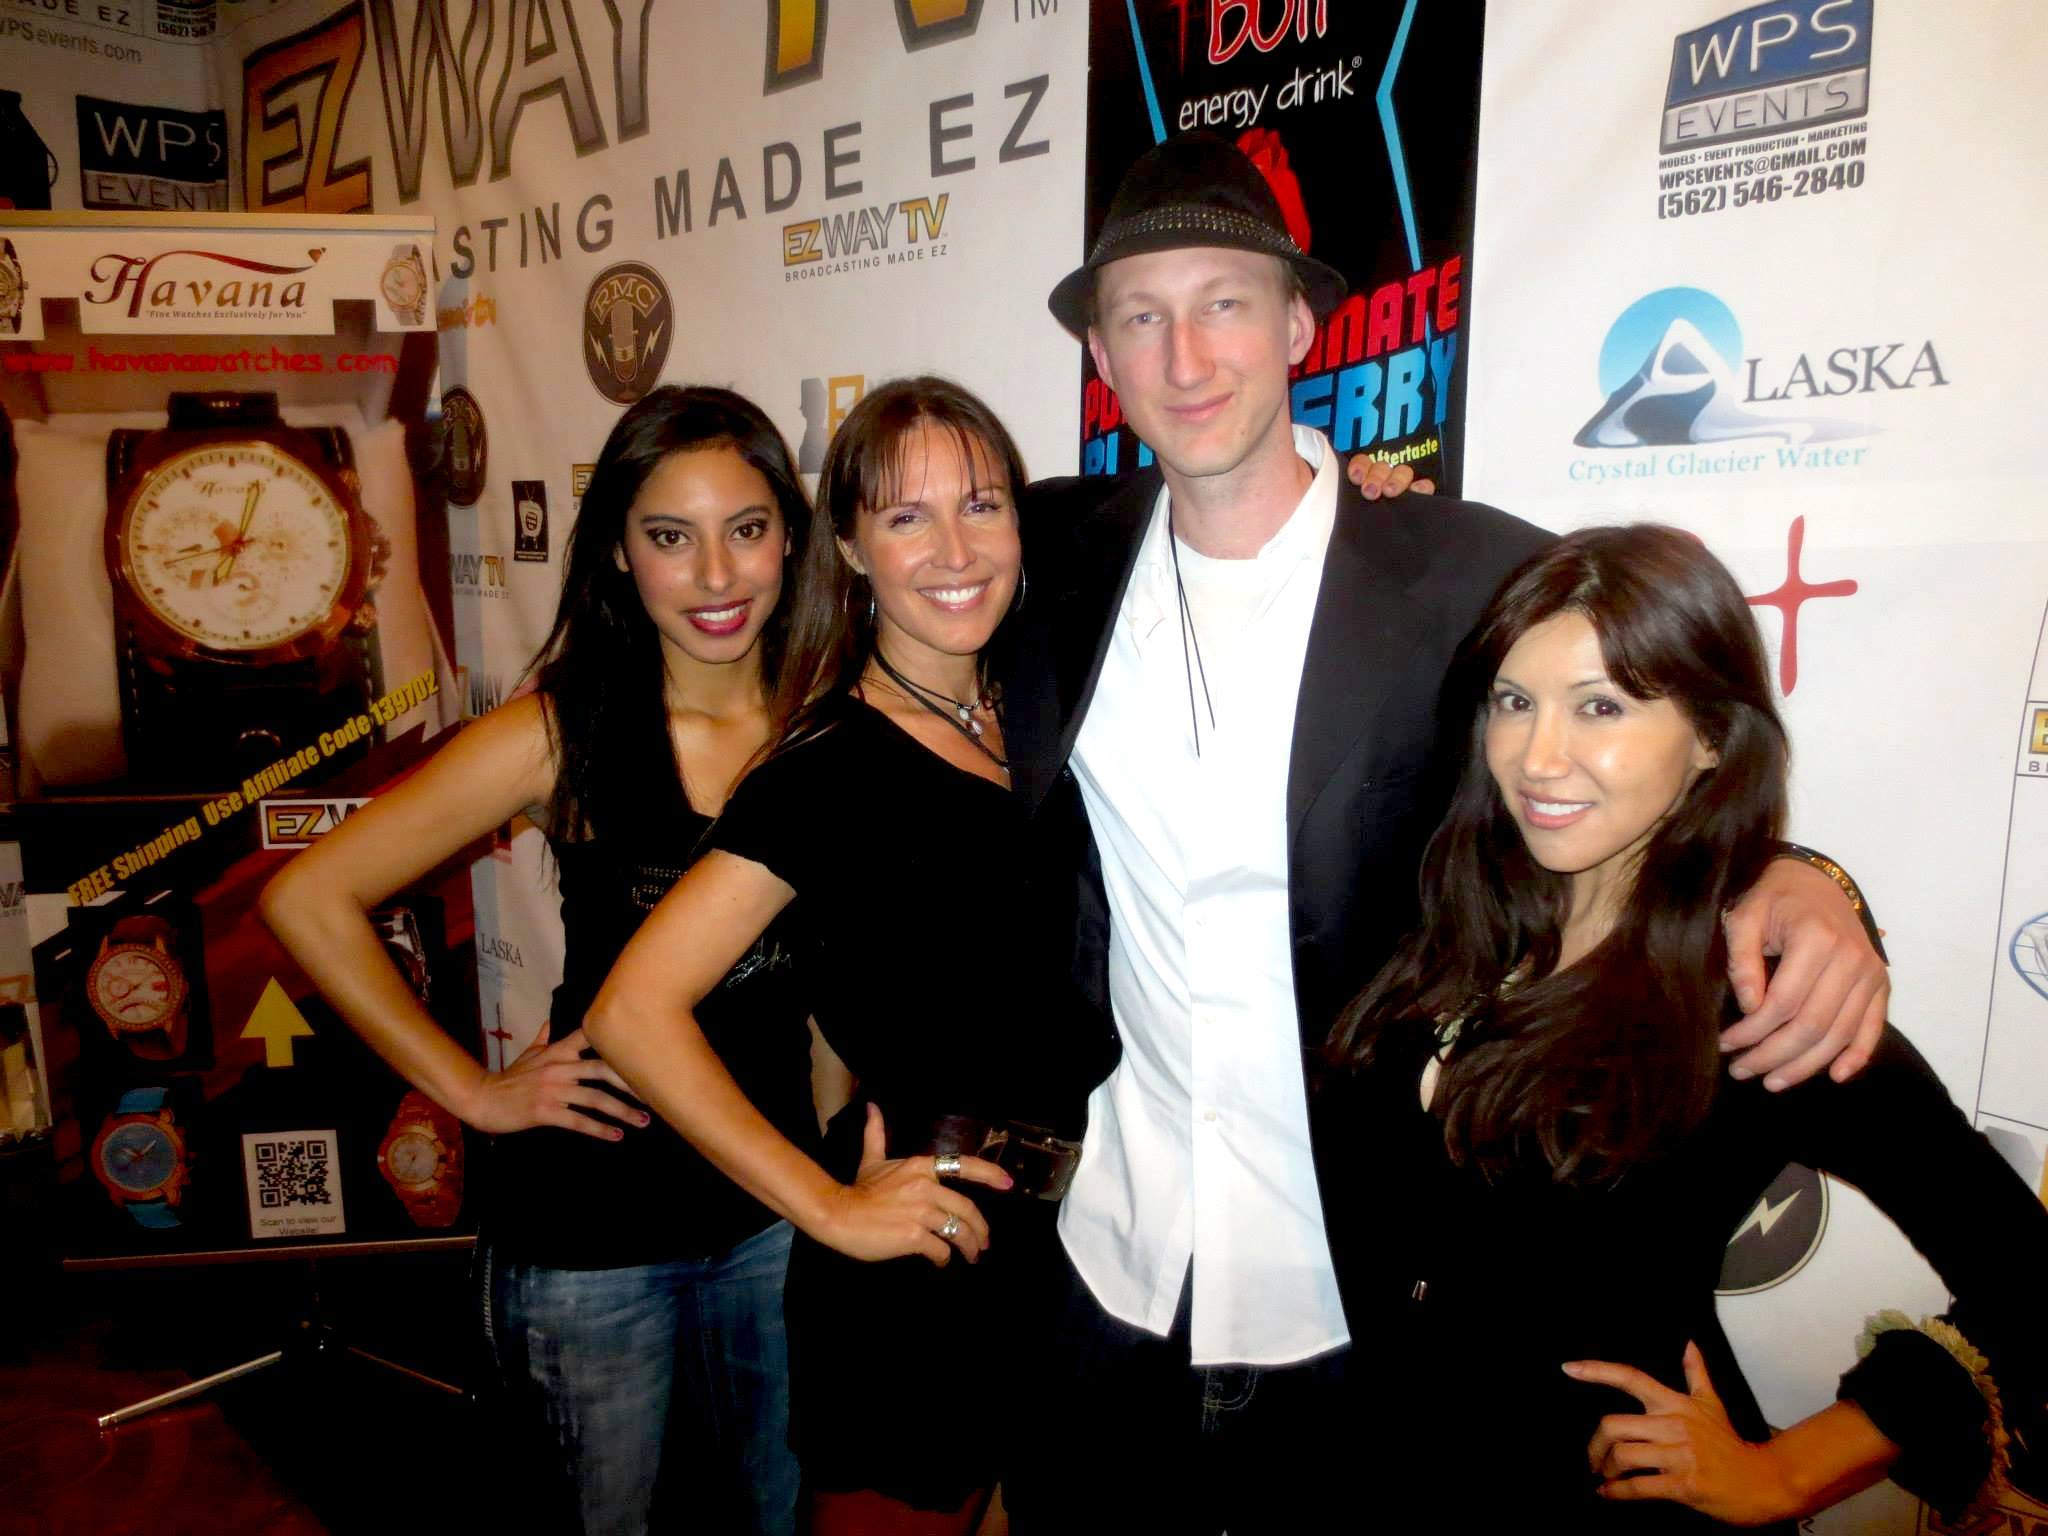 Sita Thompson Eriz Zuely, Vanilla Sky EZ Way TV Los Angeles